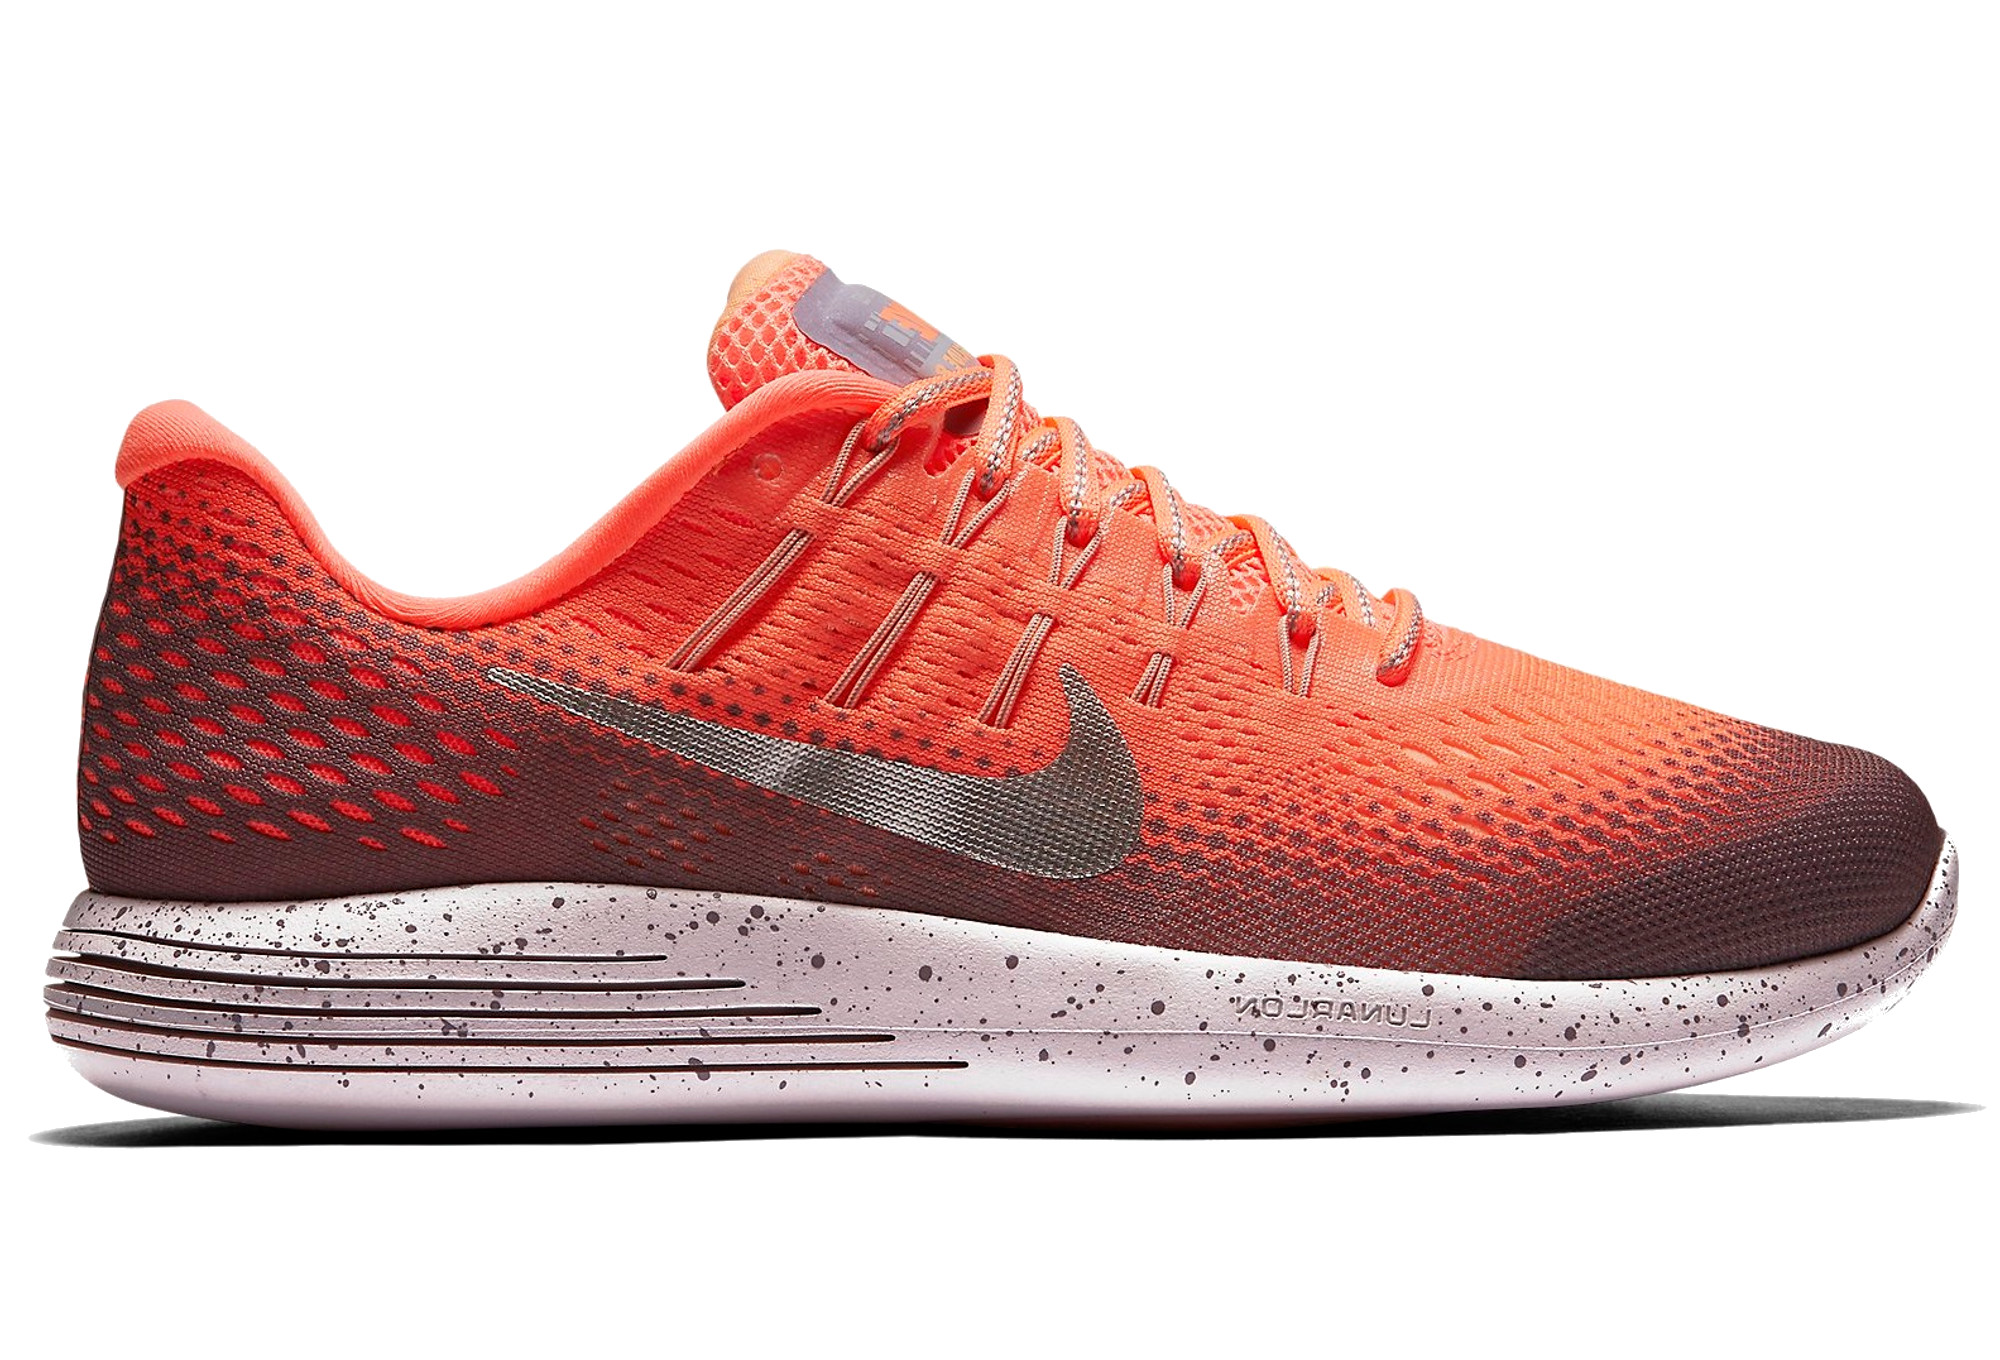 1649de4c6e0c NIKE LUNARGLIDE 8 SHIELD Shoes Orange Women